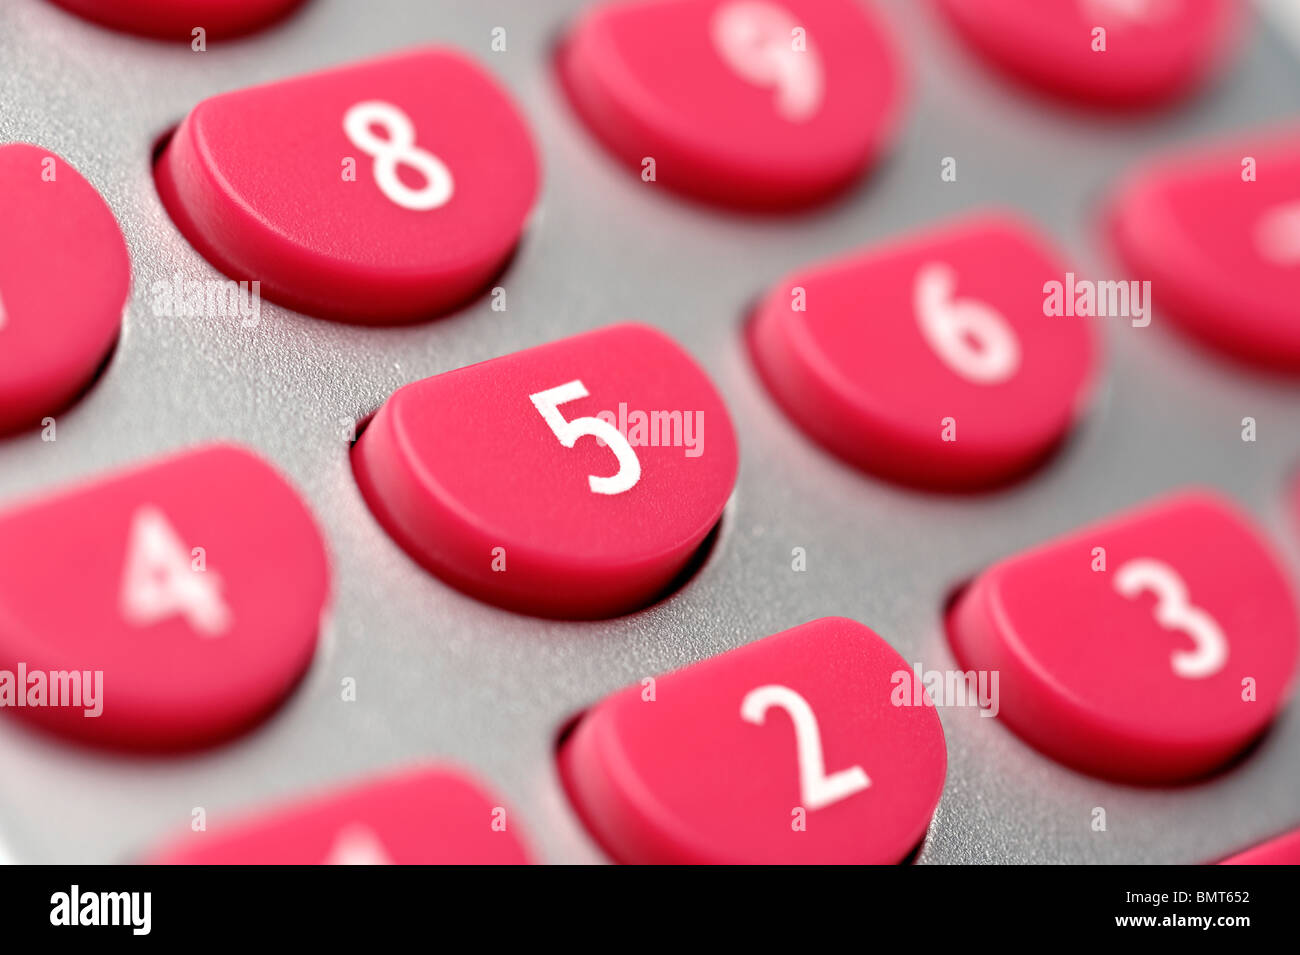 Pink calculator buttons - Stock Image